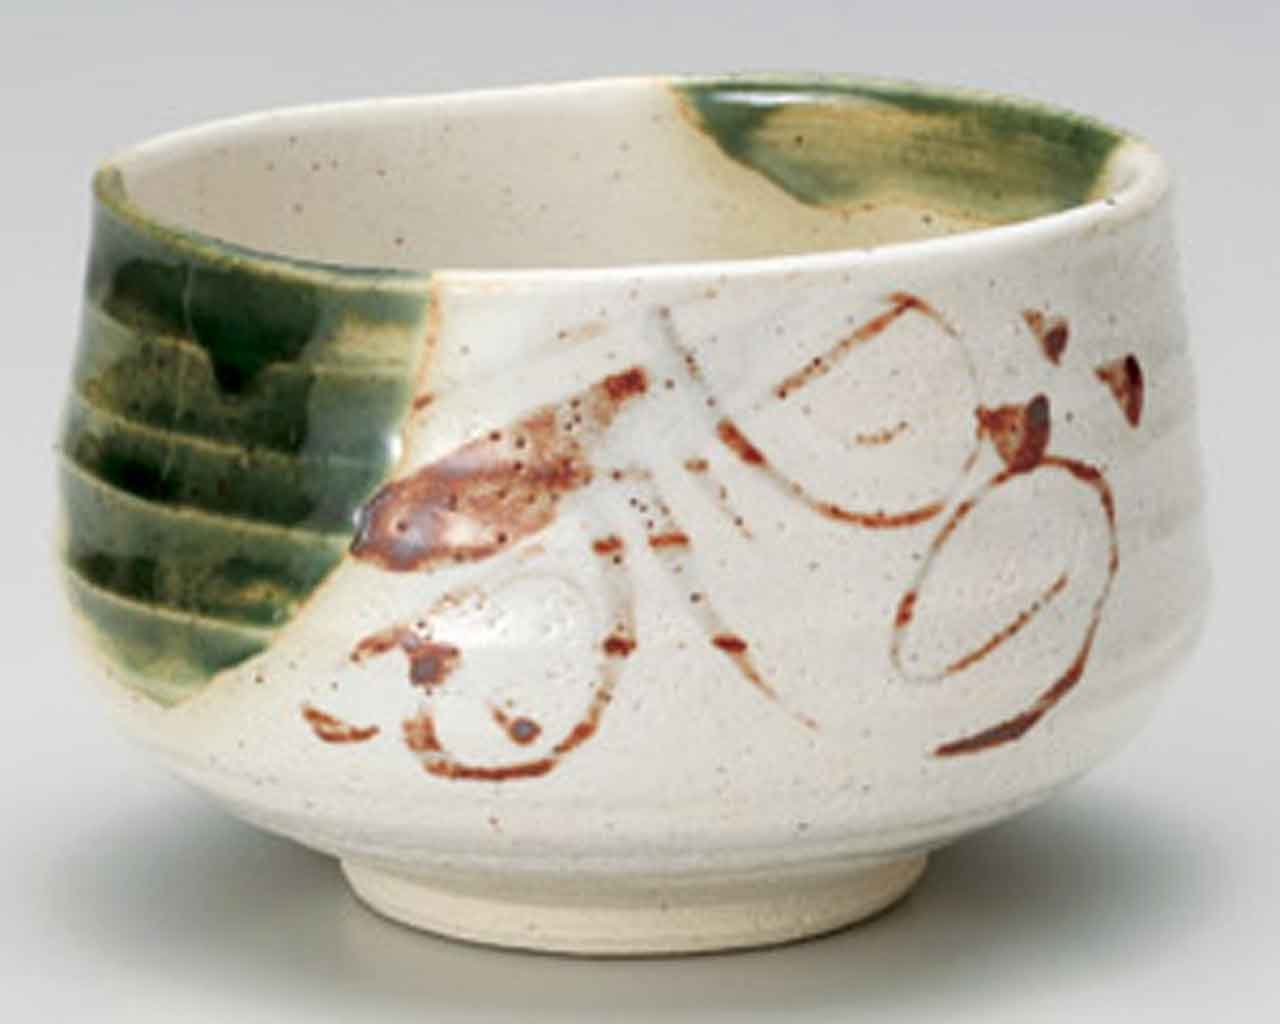 Shino Oribe 4.5inch Matcha-Bowl White Ceramic Made in Japan by Watou.asia